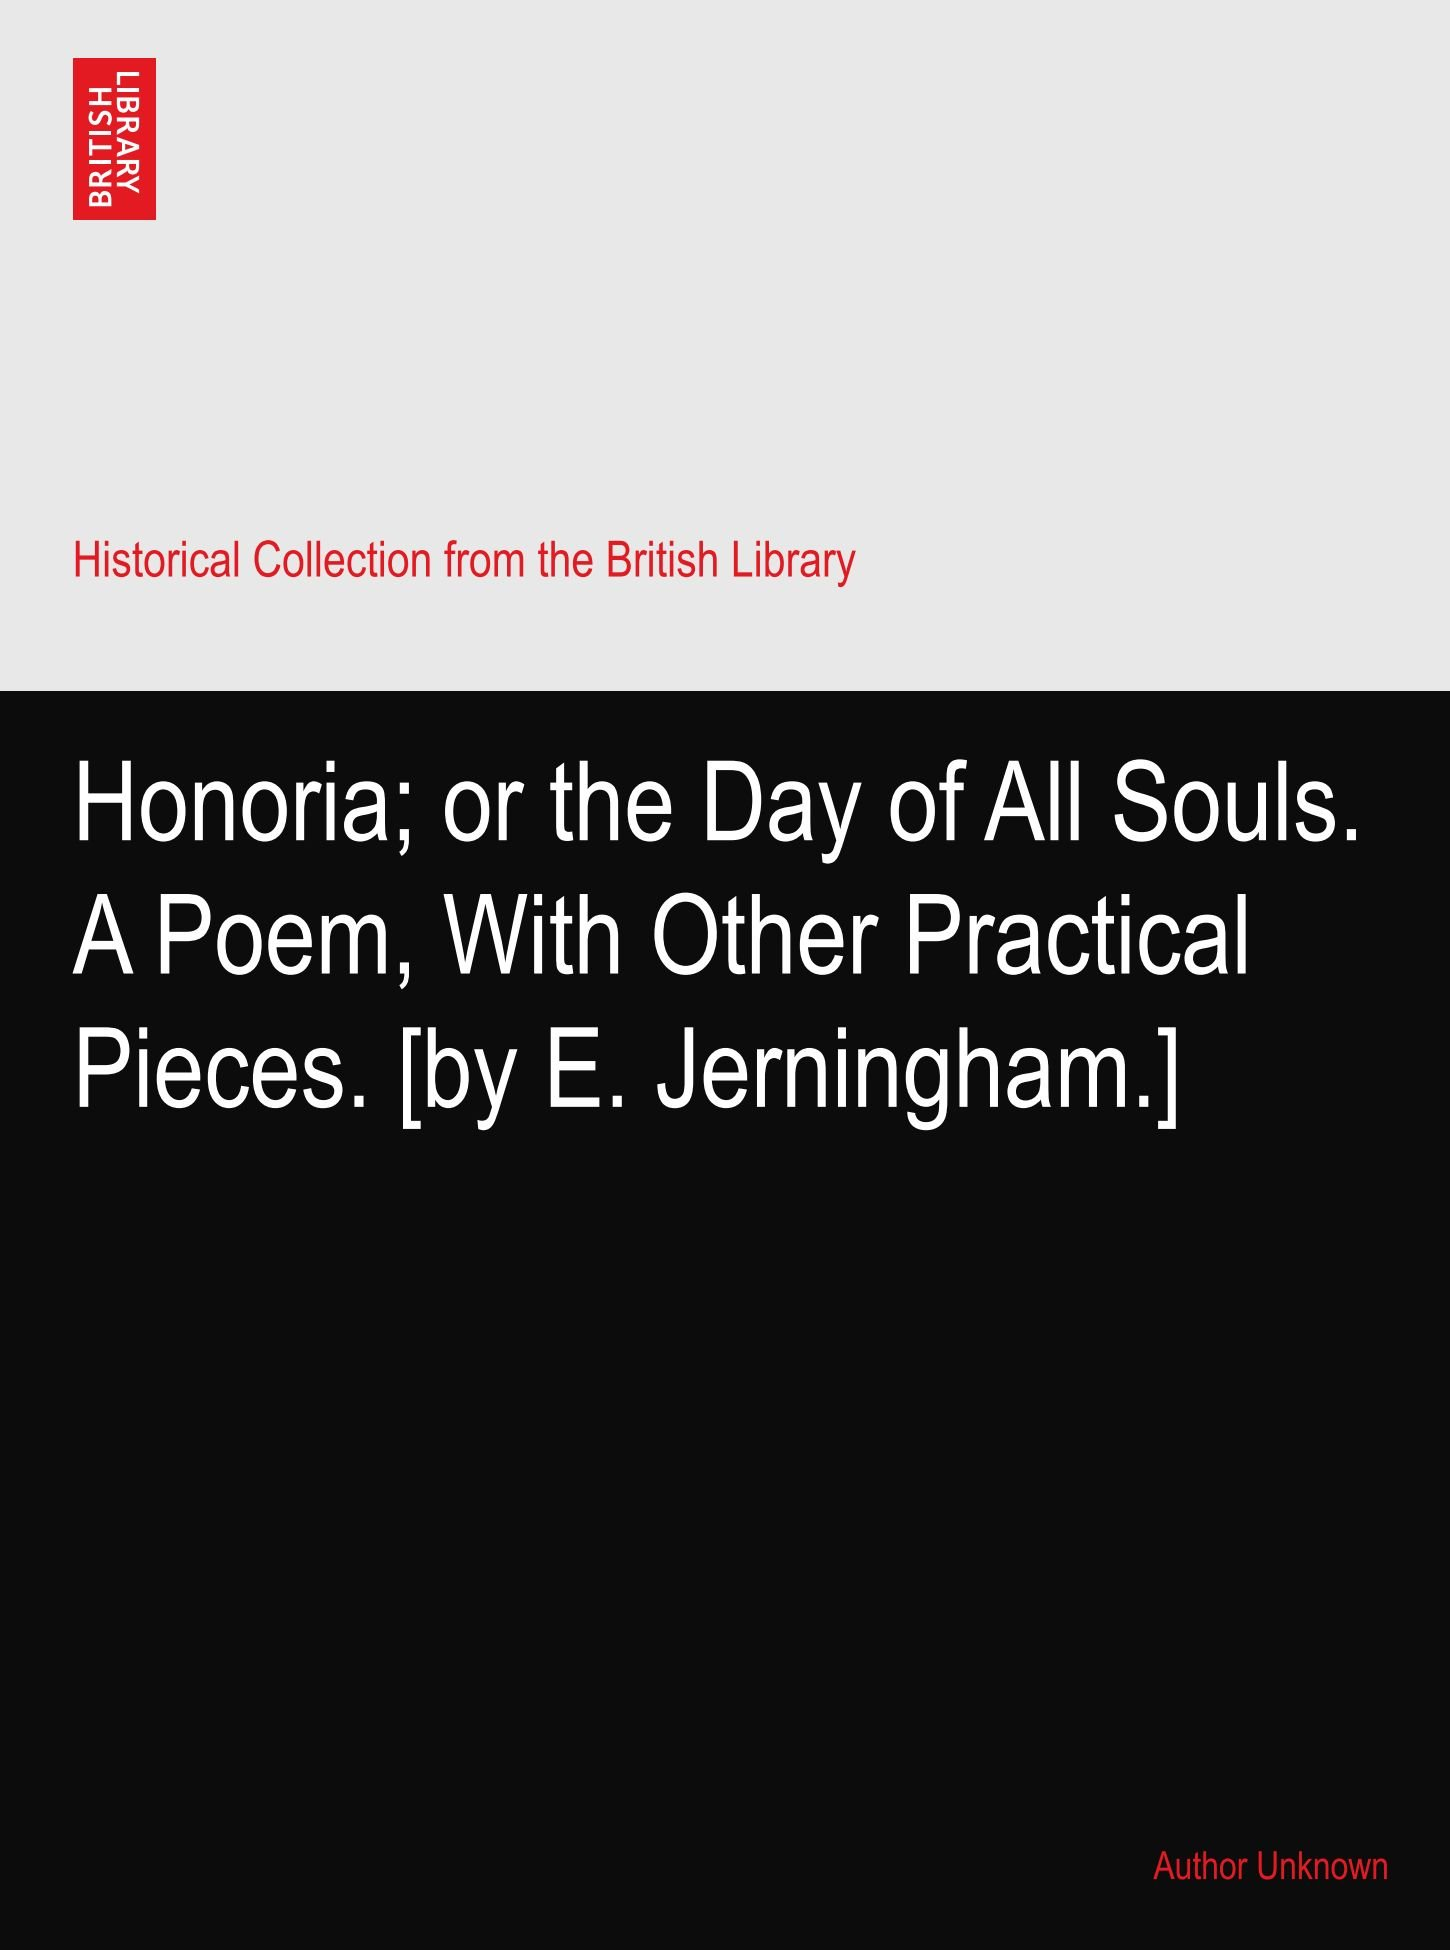 Honoria; or the Day of All Souls. A Poem, With Other Practical Pieces. [by E. Jerningham.] ebook